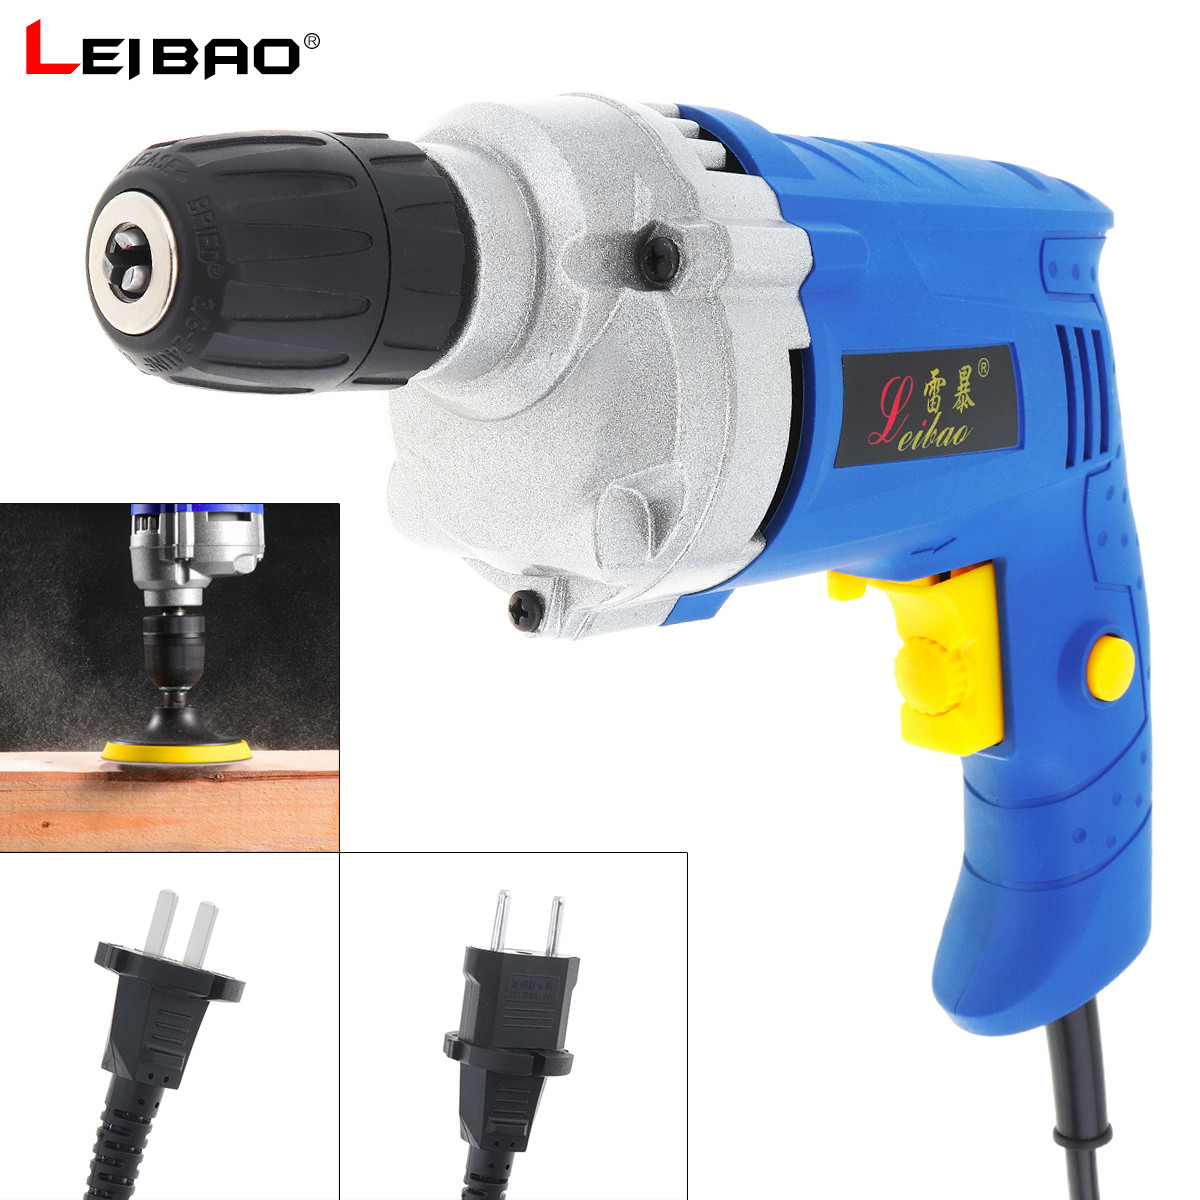 220V 780W High Power Handheld Impact Electric Drill with Rotation Adjustment Switch and 10mm Drill Chuck for Punching Polishing220V 780W High Power Handheld Impact Electric Drill with Rotation Adjustment Switch and 10mm Drill Chuck for Punching Polishing